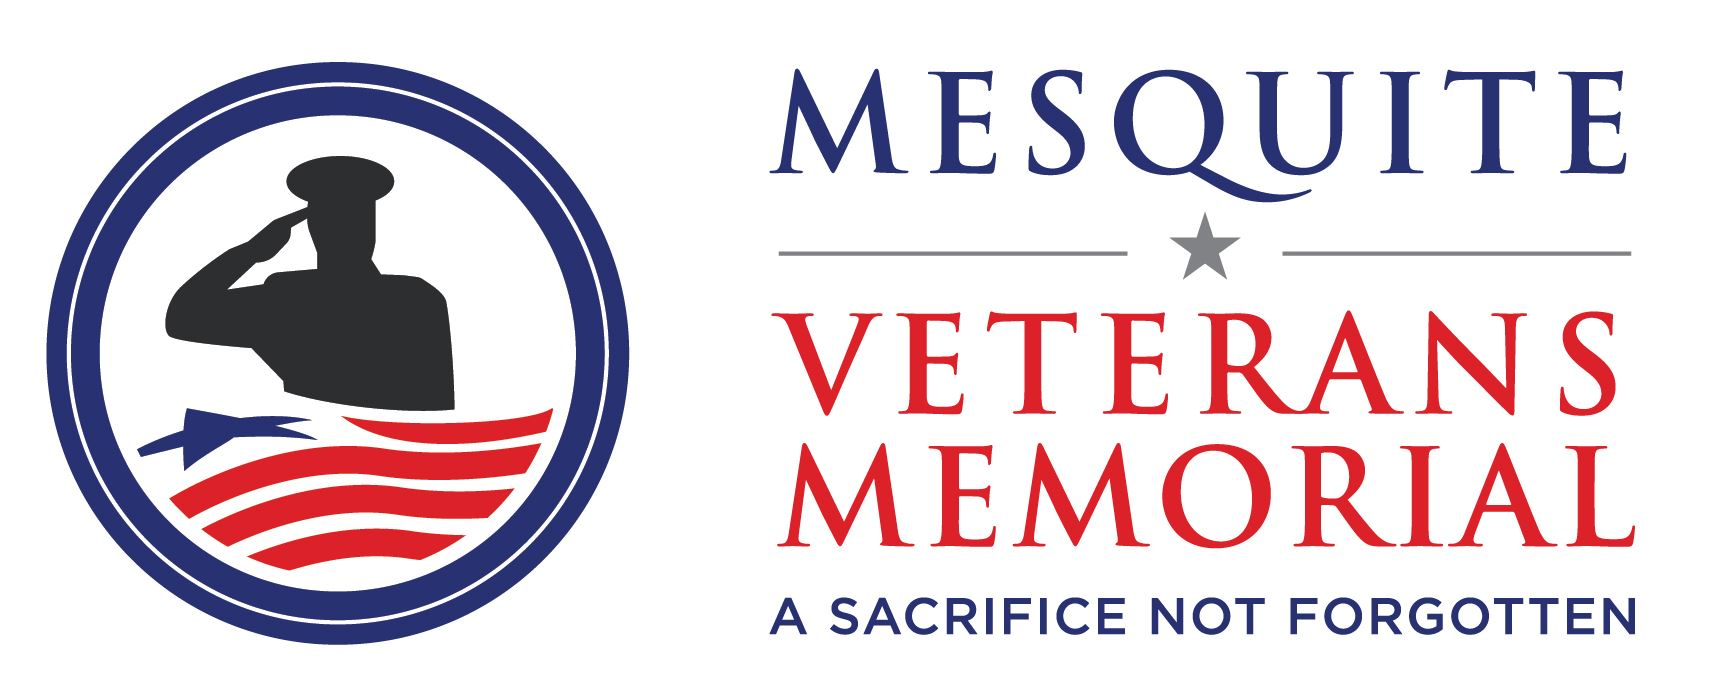 Mesquite Veterans Memorial-horizontal